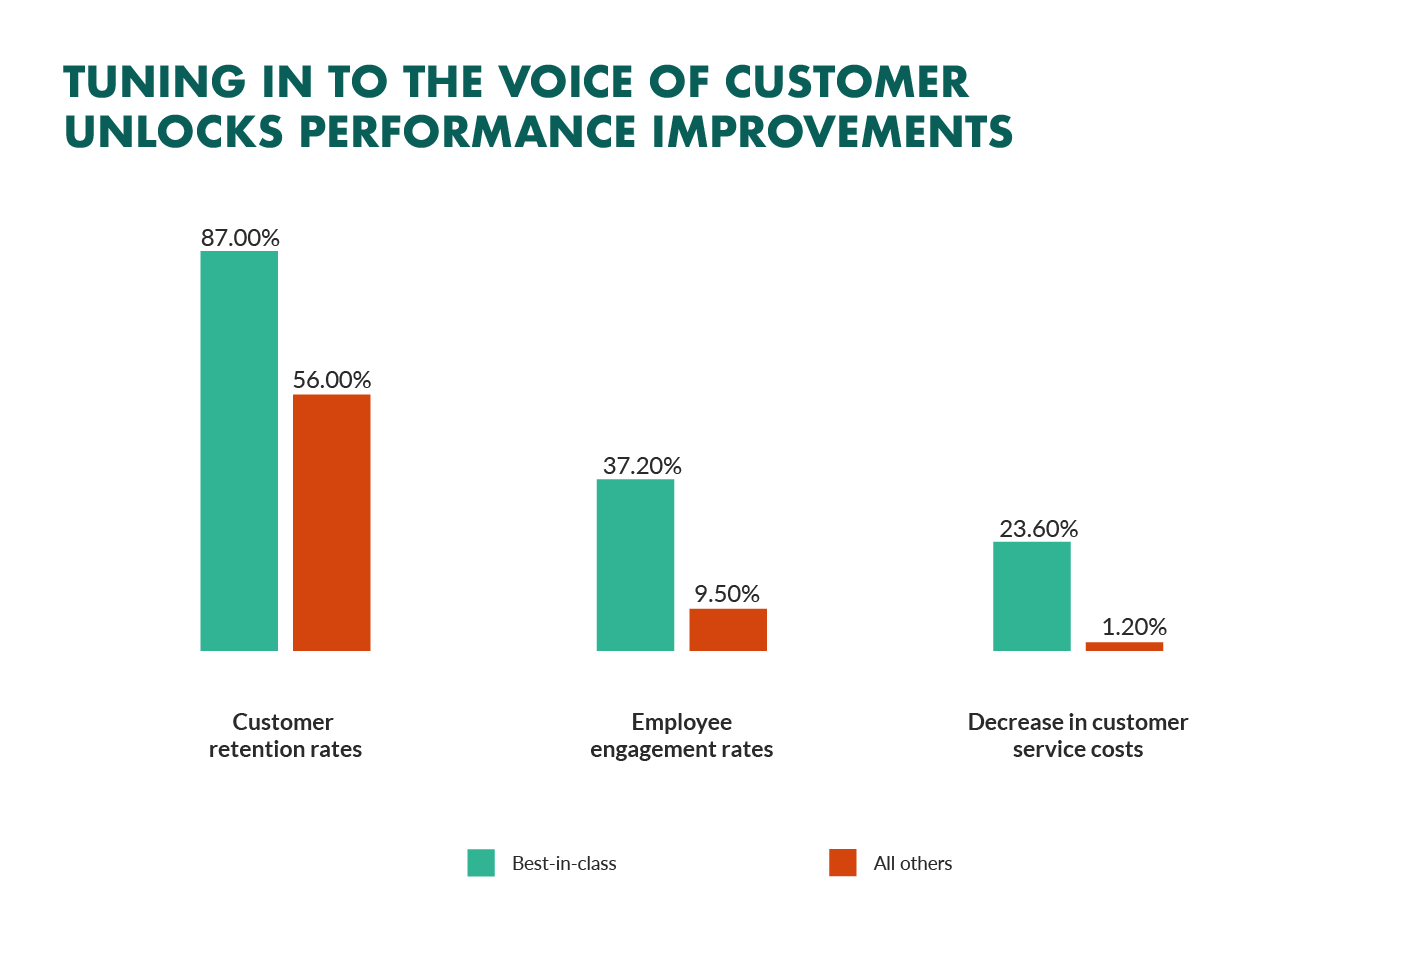 Voice of the customers data on performance improvements